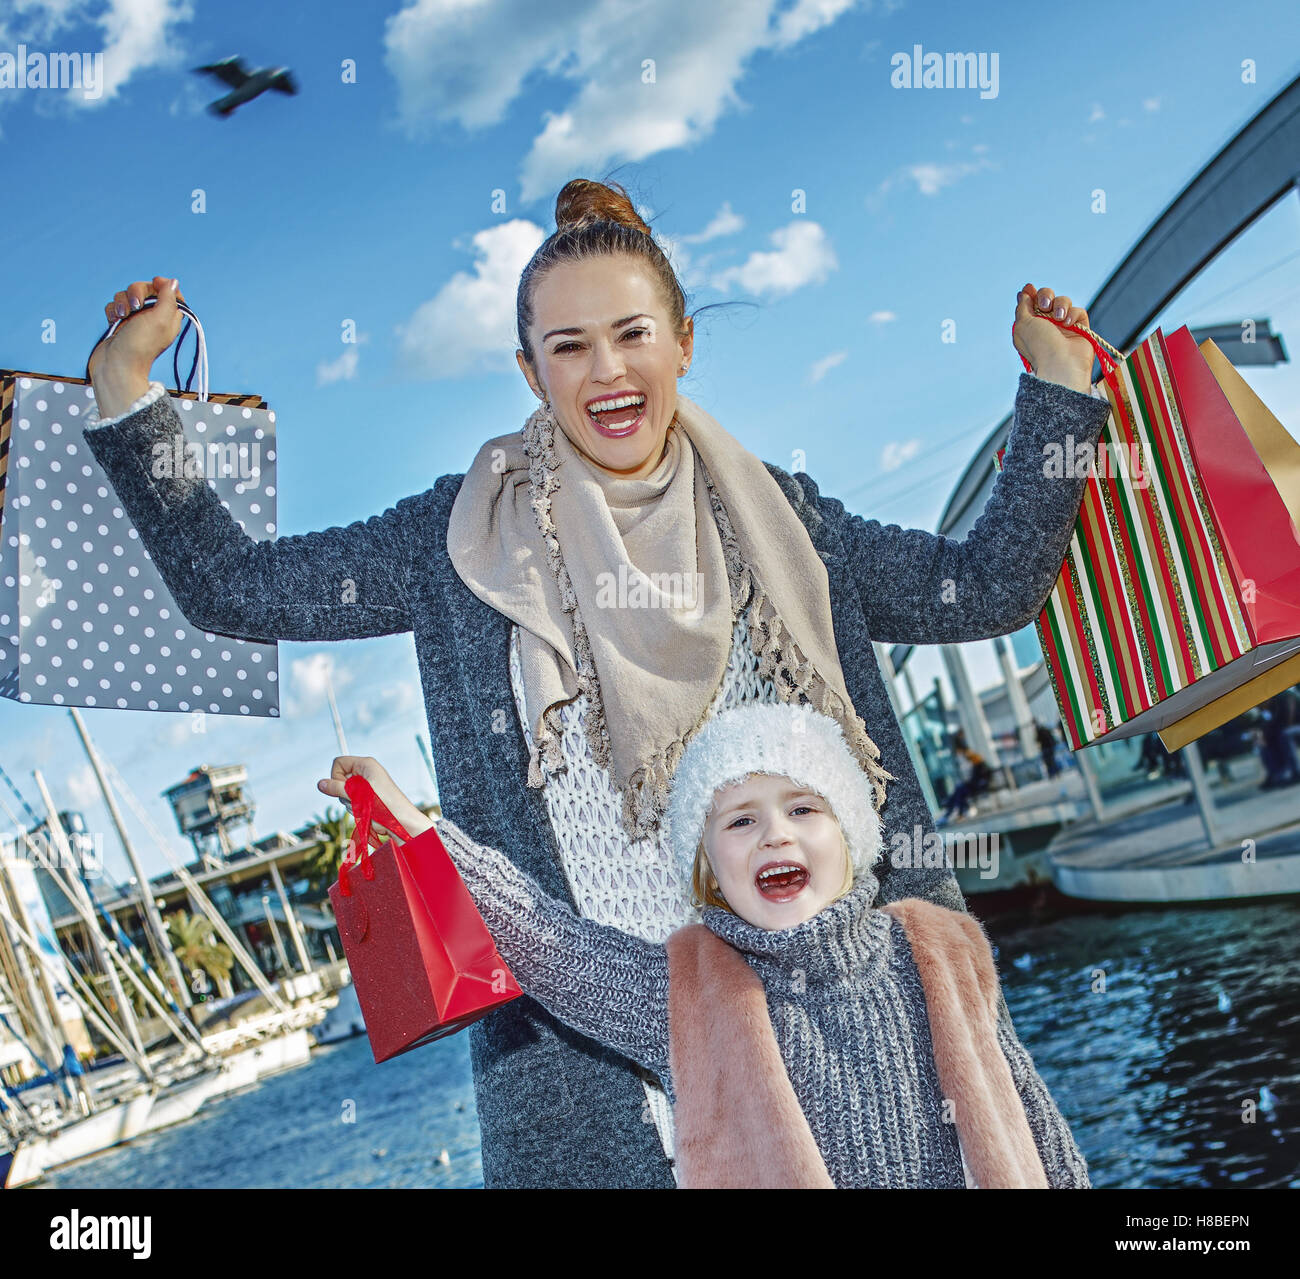 in Barcelona for a perfect present. smiling modern mother and child with shopping bags on embankment in Barcelona, - Stock Image